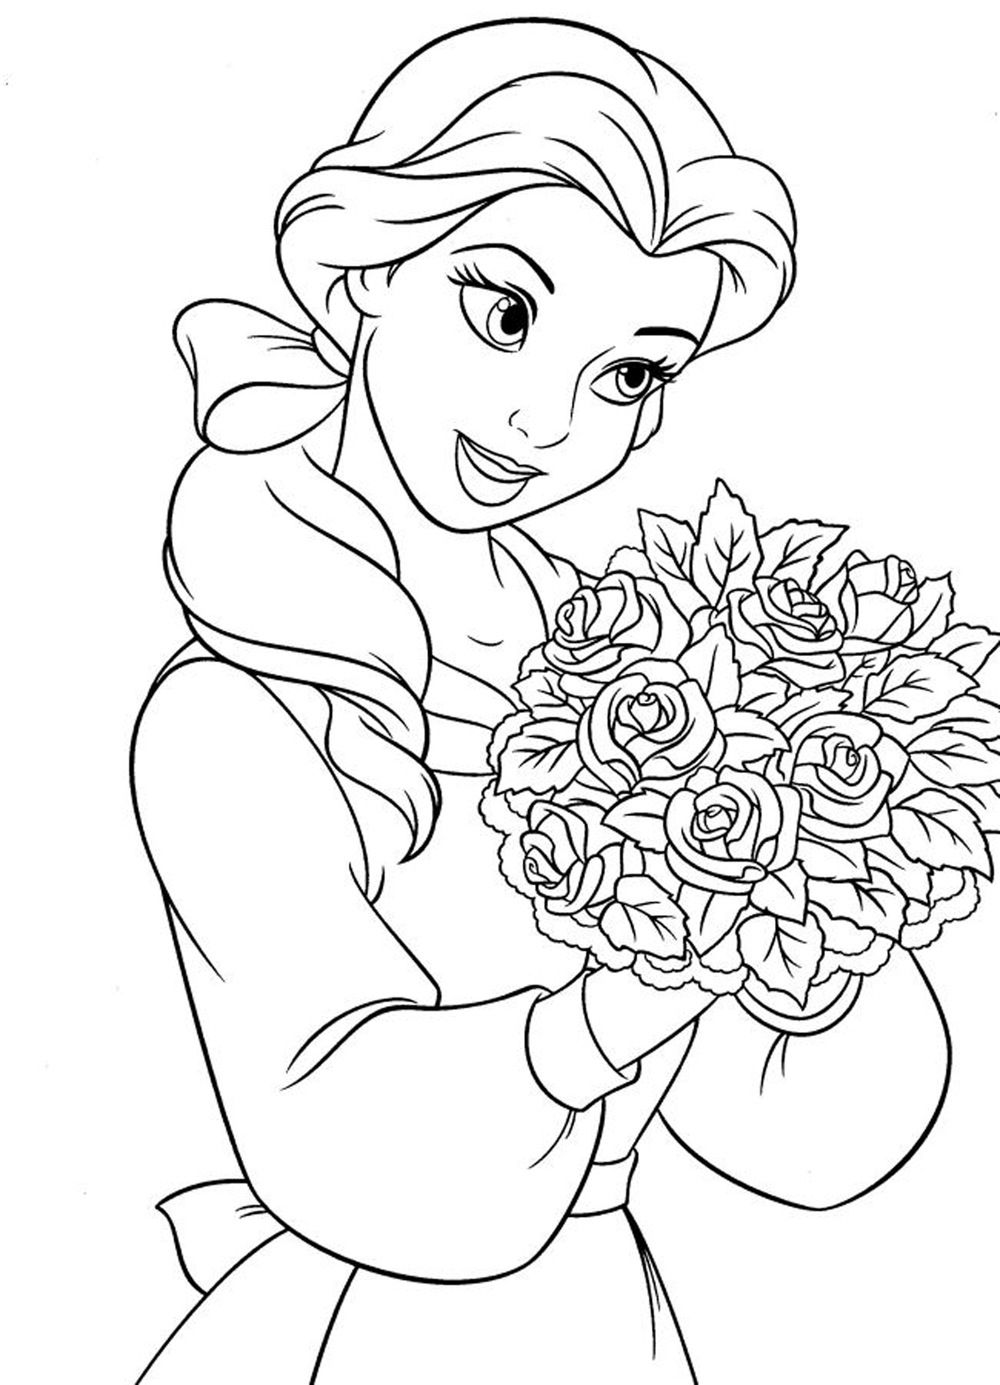 character coloring pages girl cartoon characters coloring pages coloring home pages character coloring